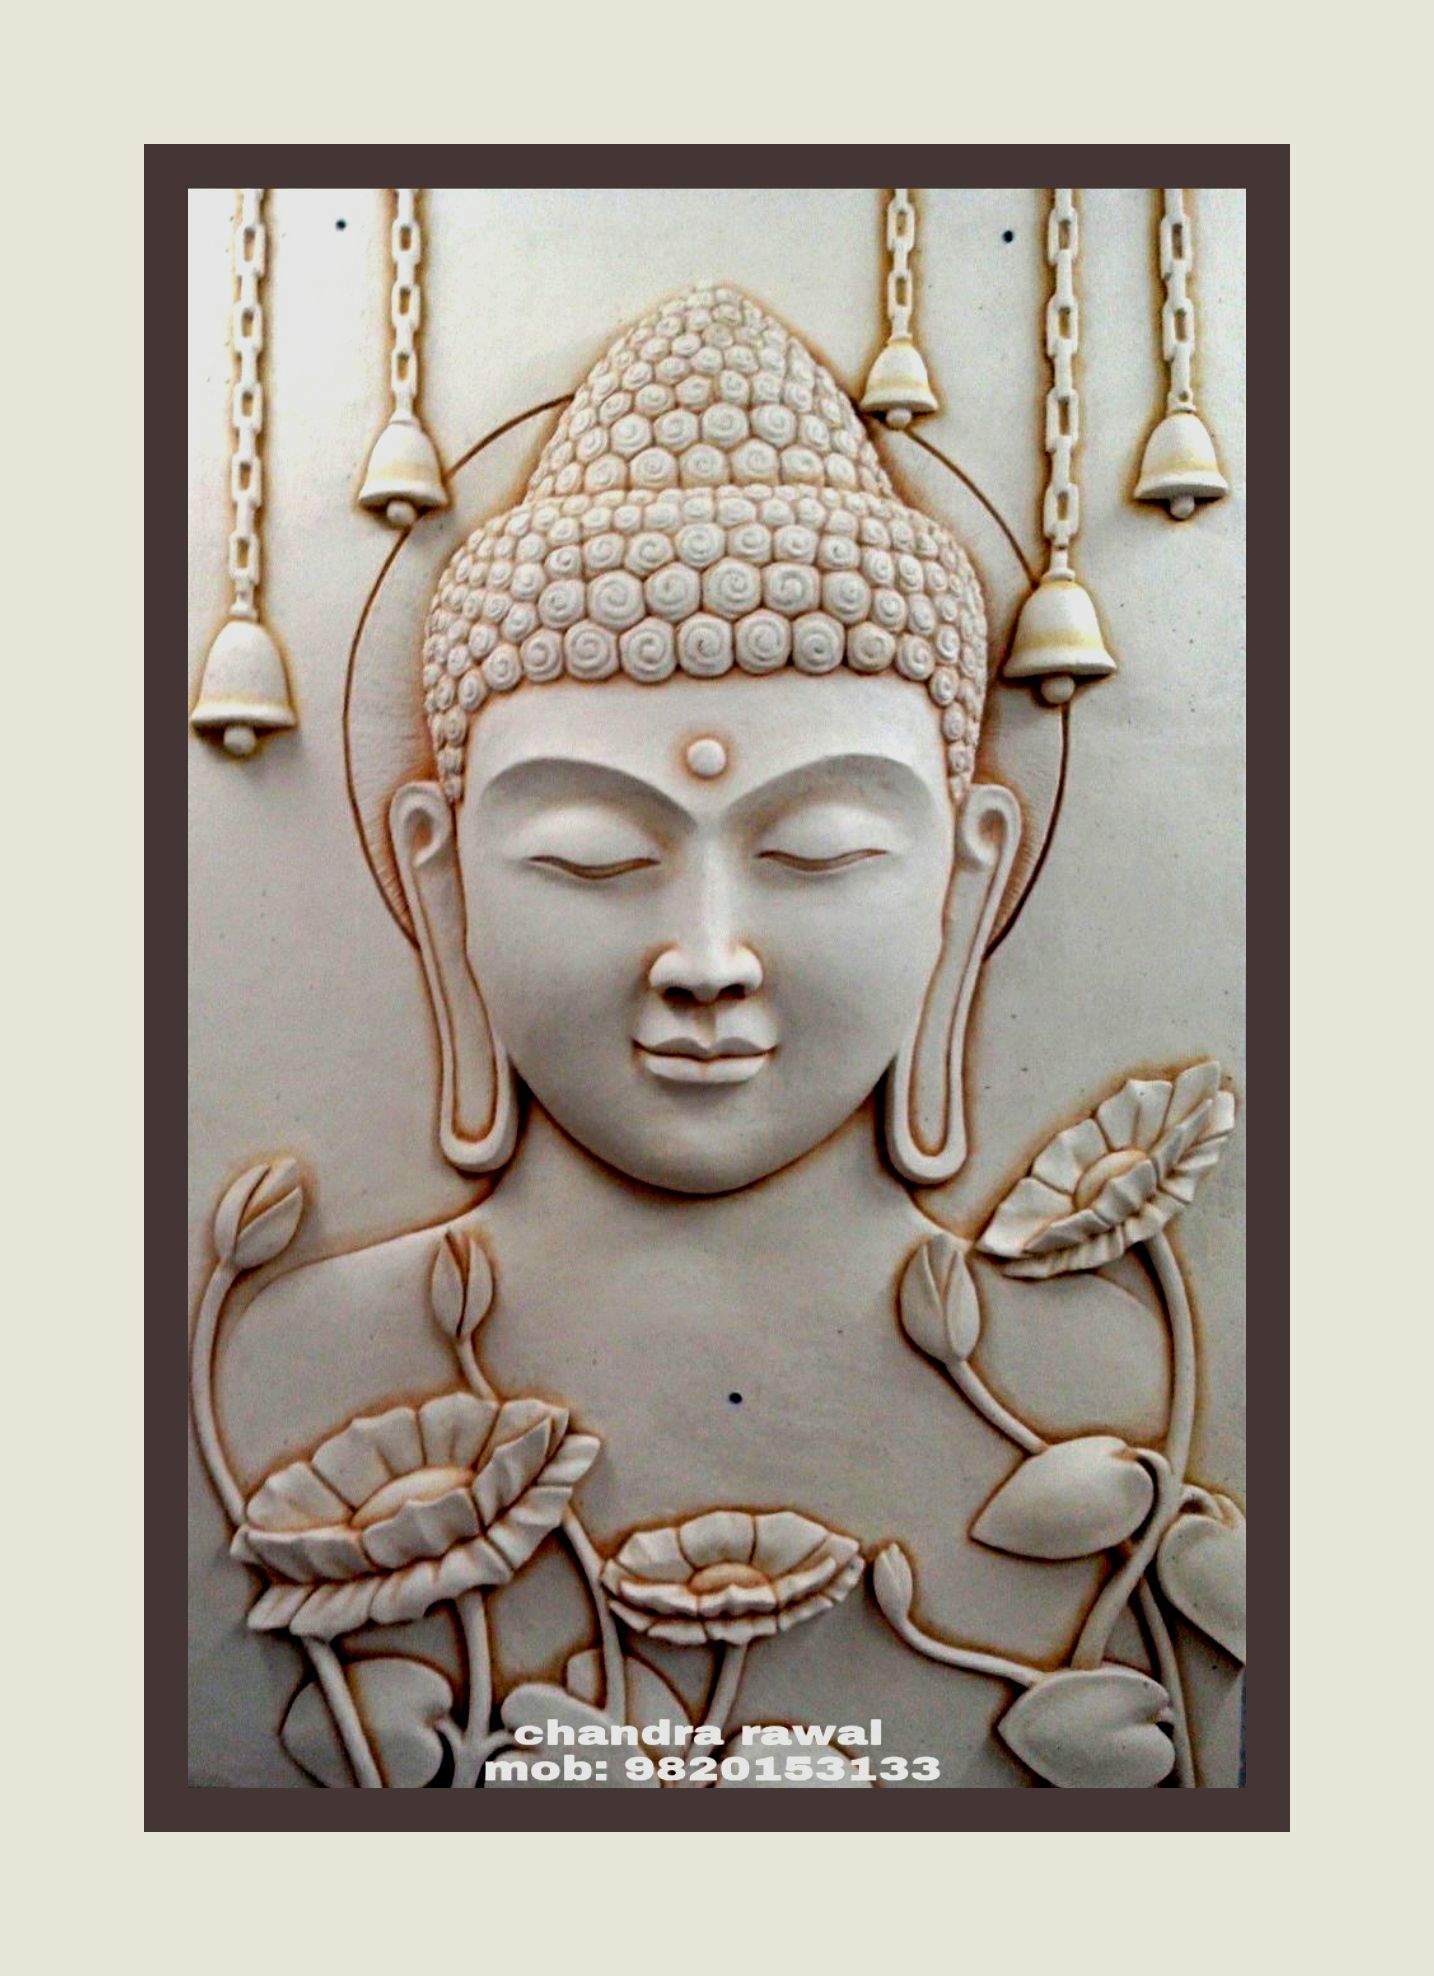 Buddha hand sculpted 3d mural on siporex siporex 3d for Clay mural designs